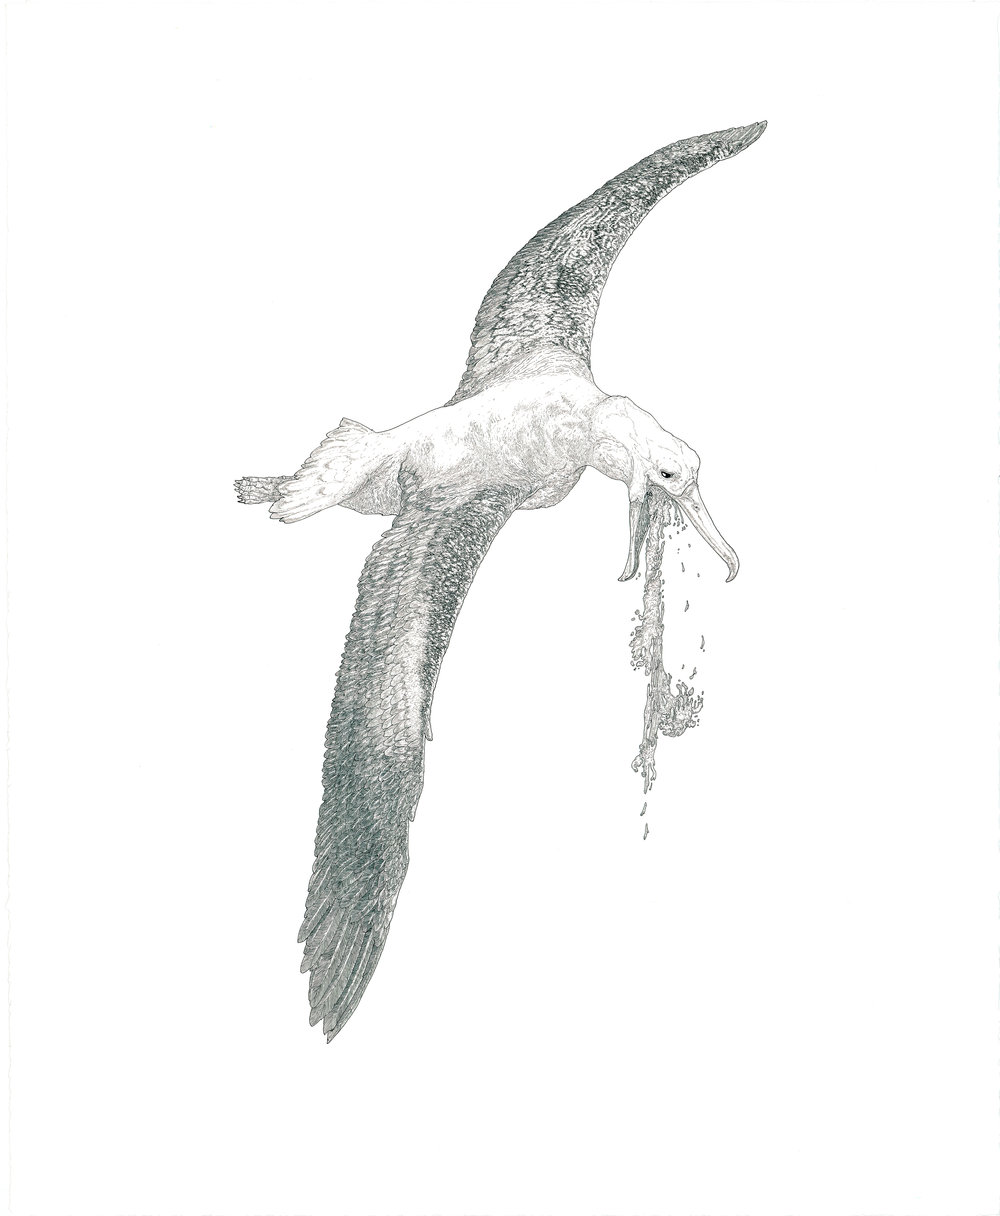 albatross, ink on paper, 27in. x 22in., 2012